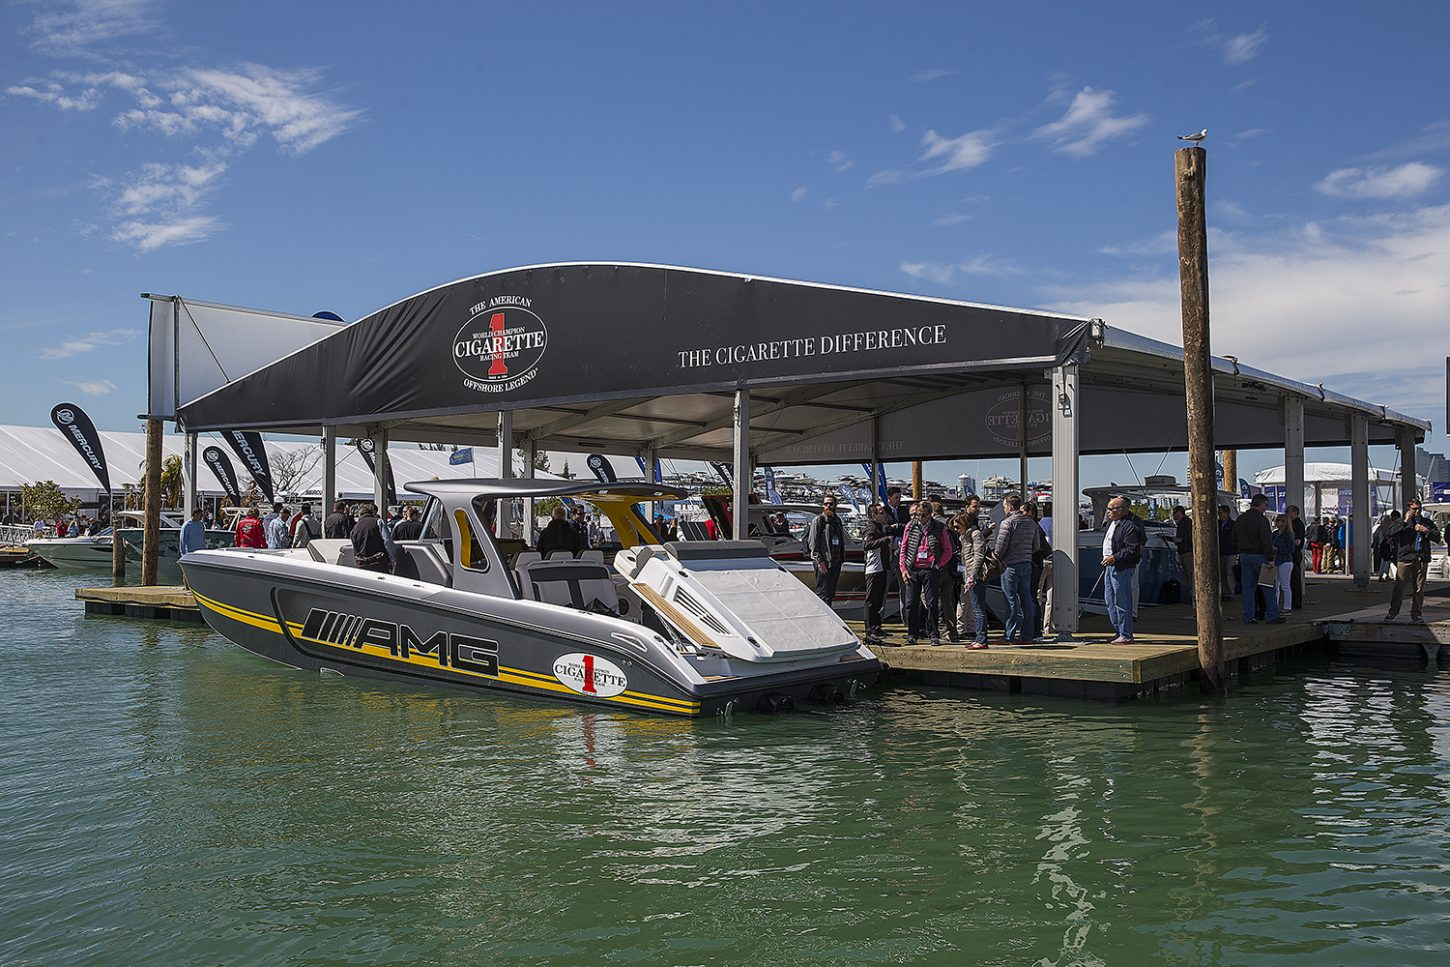 Temporary dock system built for miami international boat show - Miami boat show ...